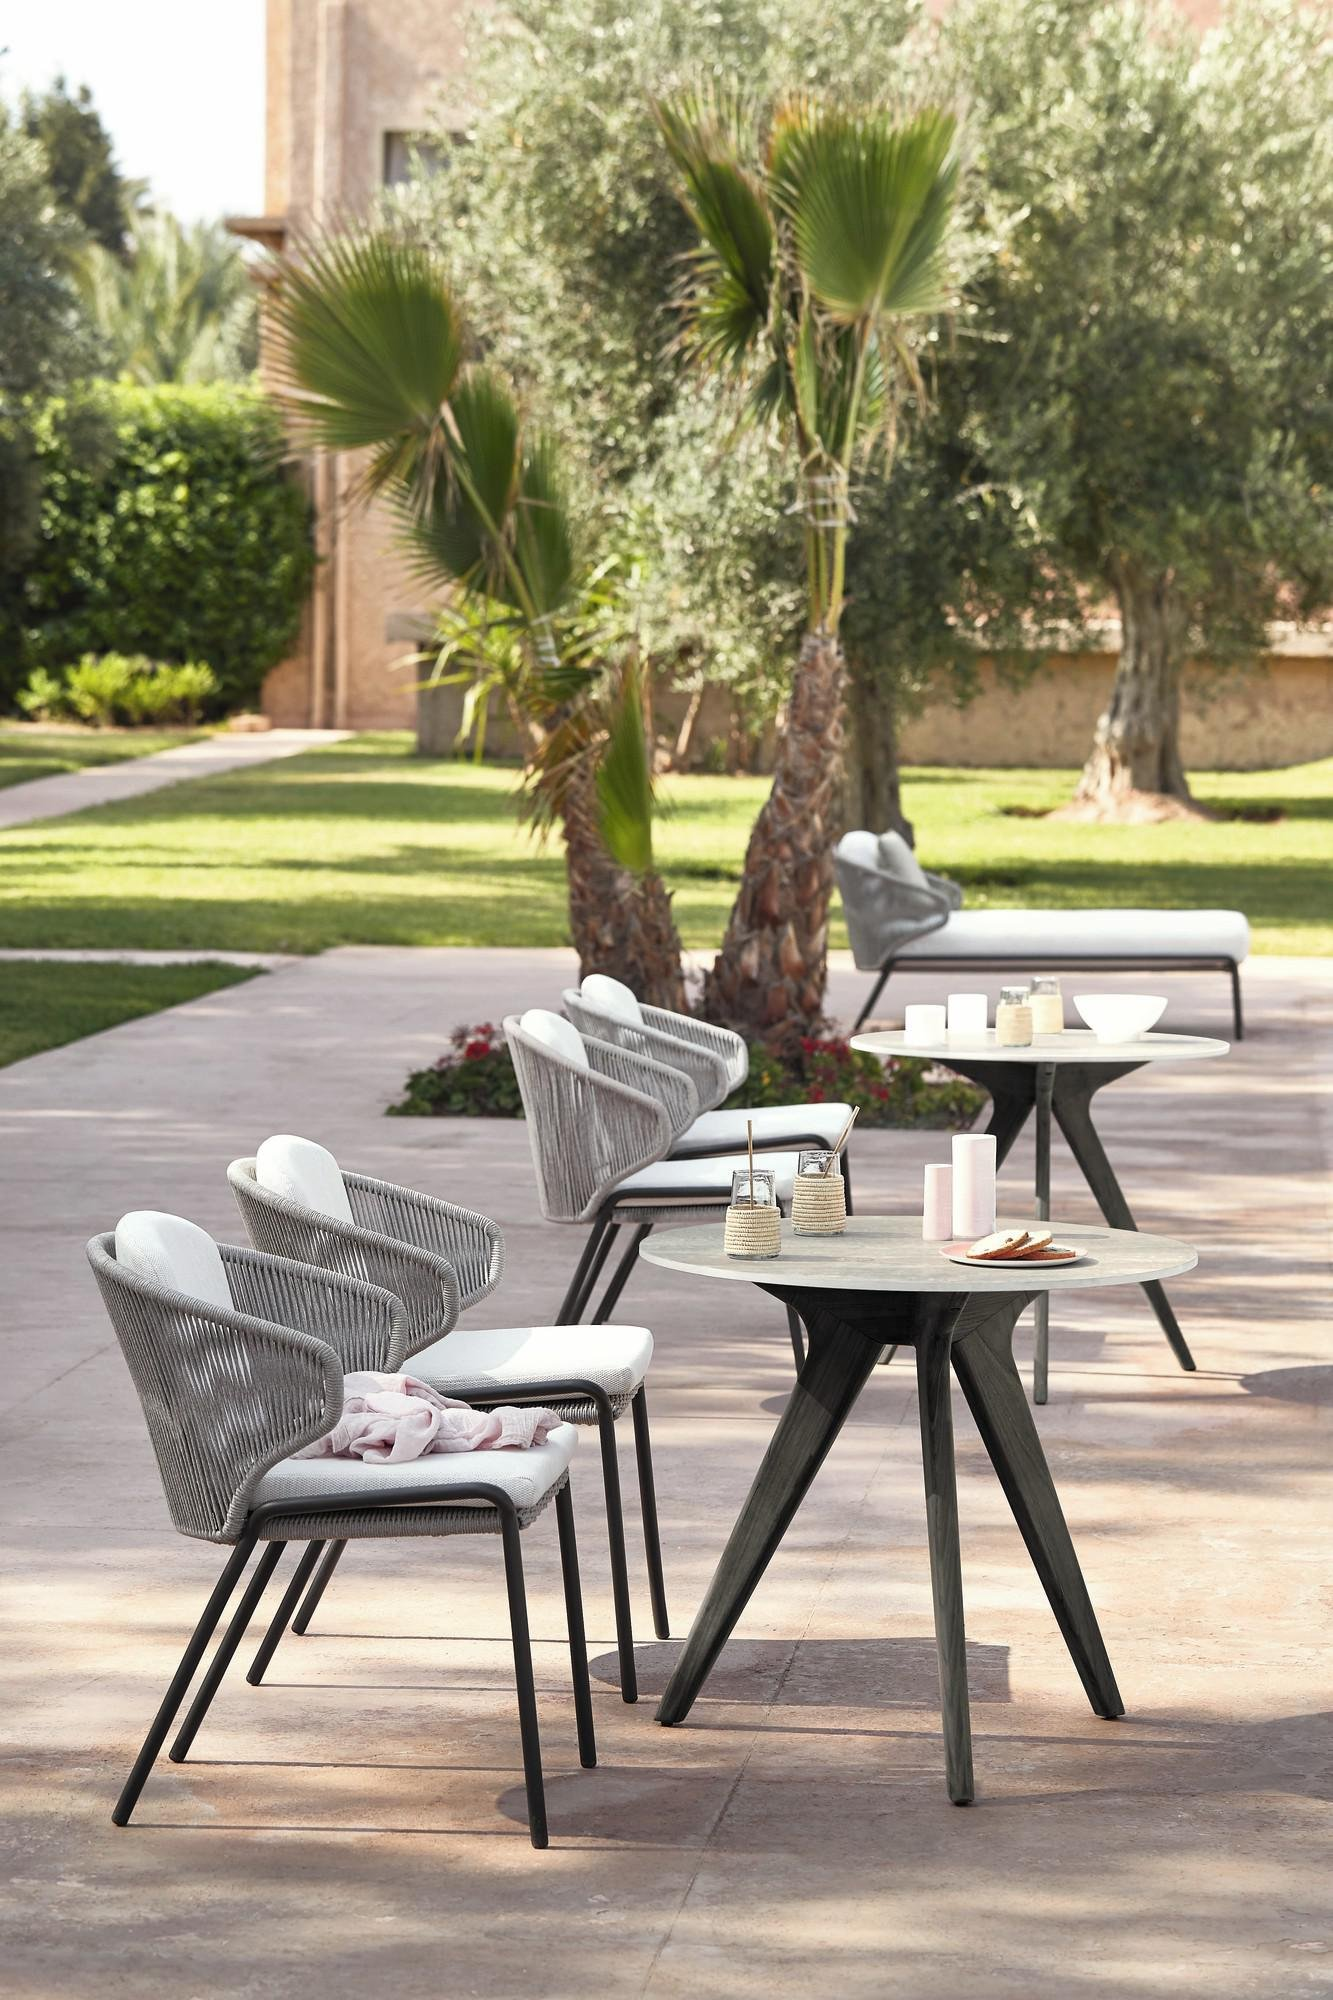 Radius Dining Chair from Manutti, designed by Stephane De Winter